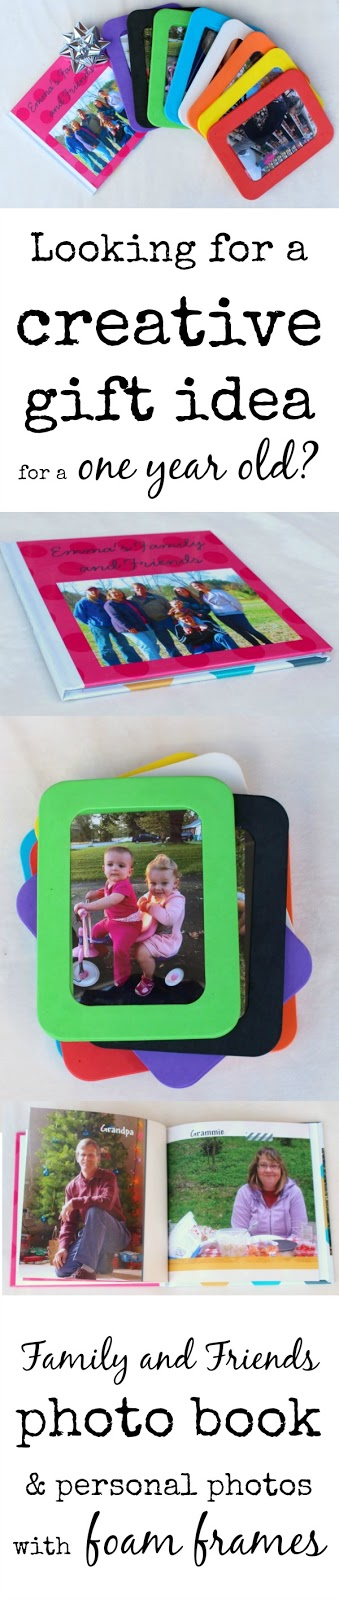 A creative and personalized gift idea for a one year old or a toddler- A family and friends photo book and/or family photos framed in colored foam. My toddler LOVES this!